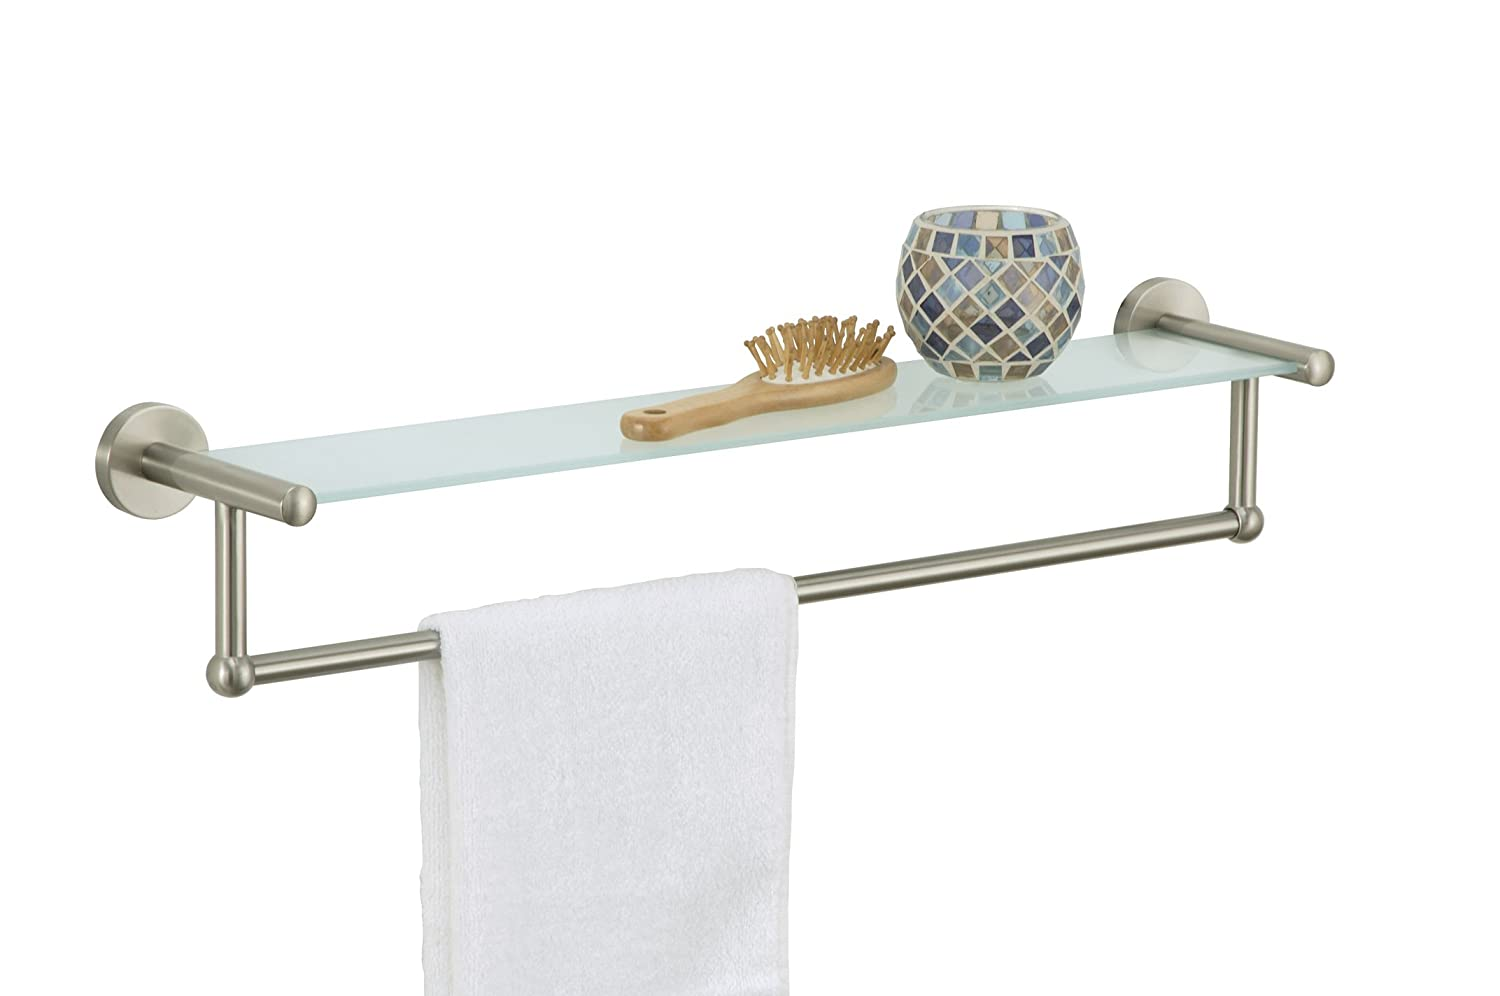 Amazon.com: Organize It All Satin Nickel Glass Shelf with Towel Bar ...